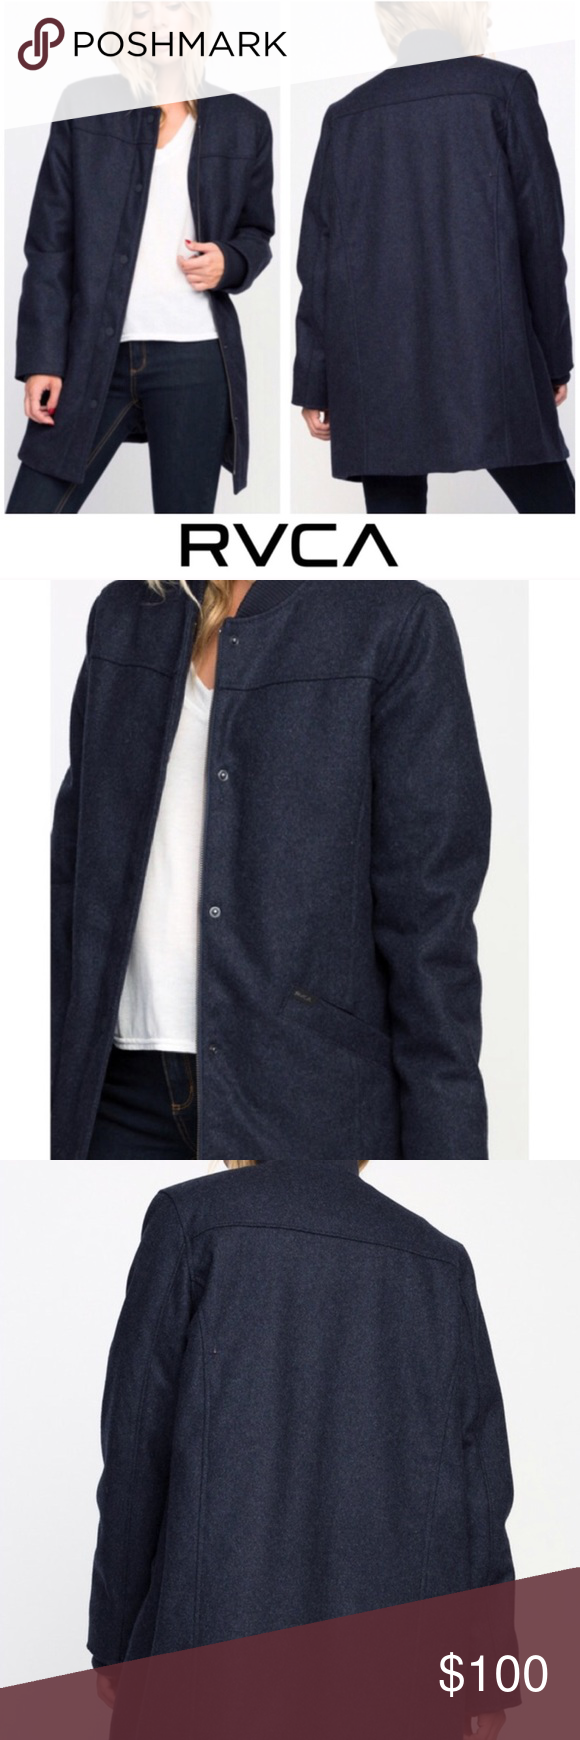 1e1d63db1b RVCA Blue Oversized Wool Button Down Layered Coat 🙃 Make Me An  Irresistible Offer 🙂 • 25%+ Discounts on Bundles • • RVCA MELANGE WOOL  COAT • NWT ...